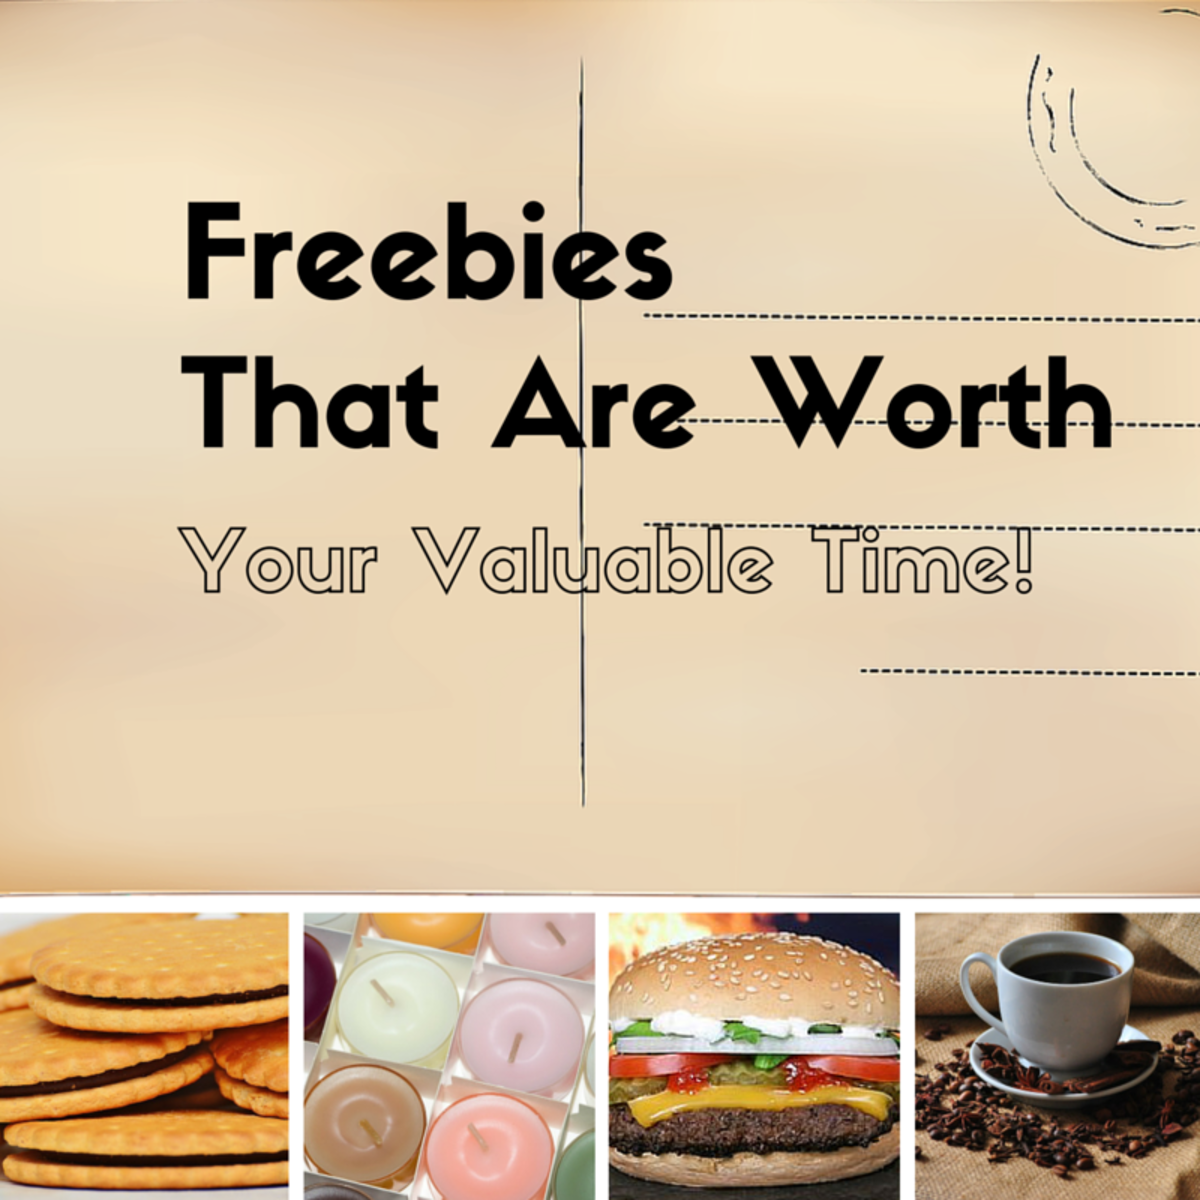 3 Clever Ways to Get Freebies Without Using Freebie Websites!